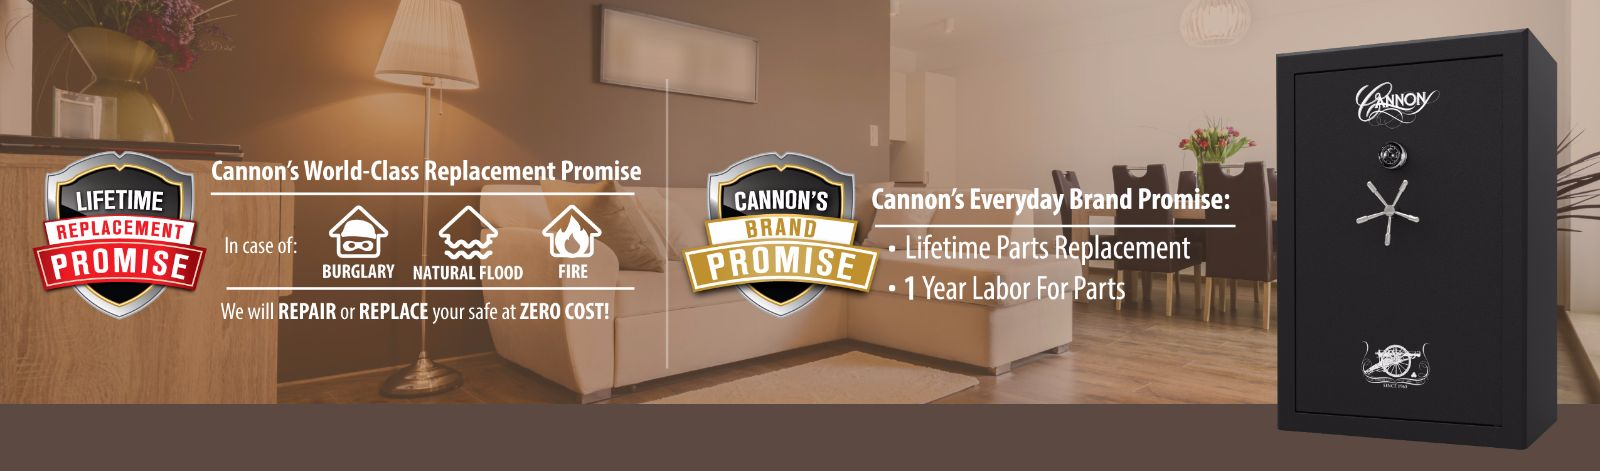 cannon safe lifetime replacement promise